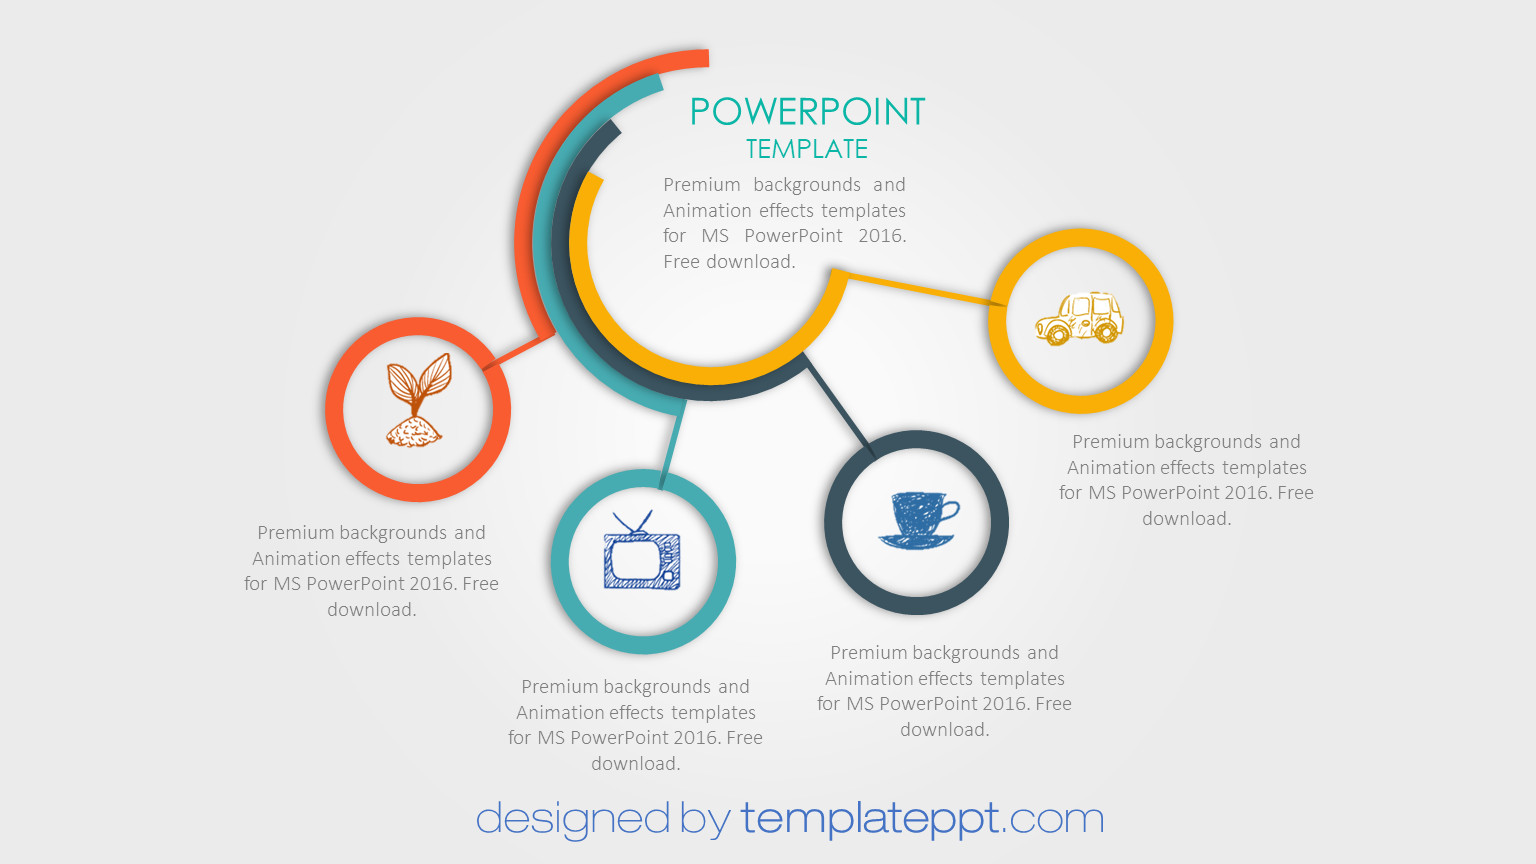 Ppt Template Free Download Professional Powerpoint Templates Free 2016